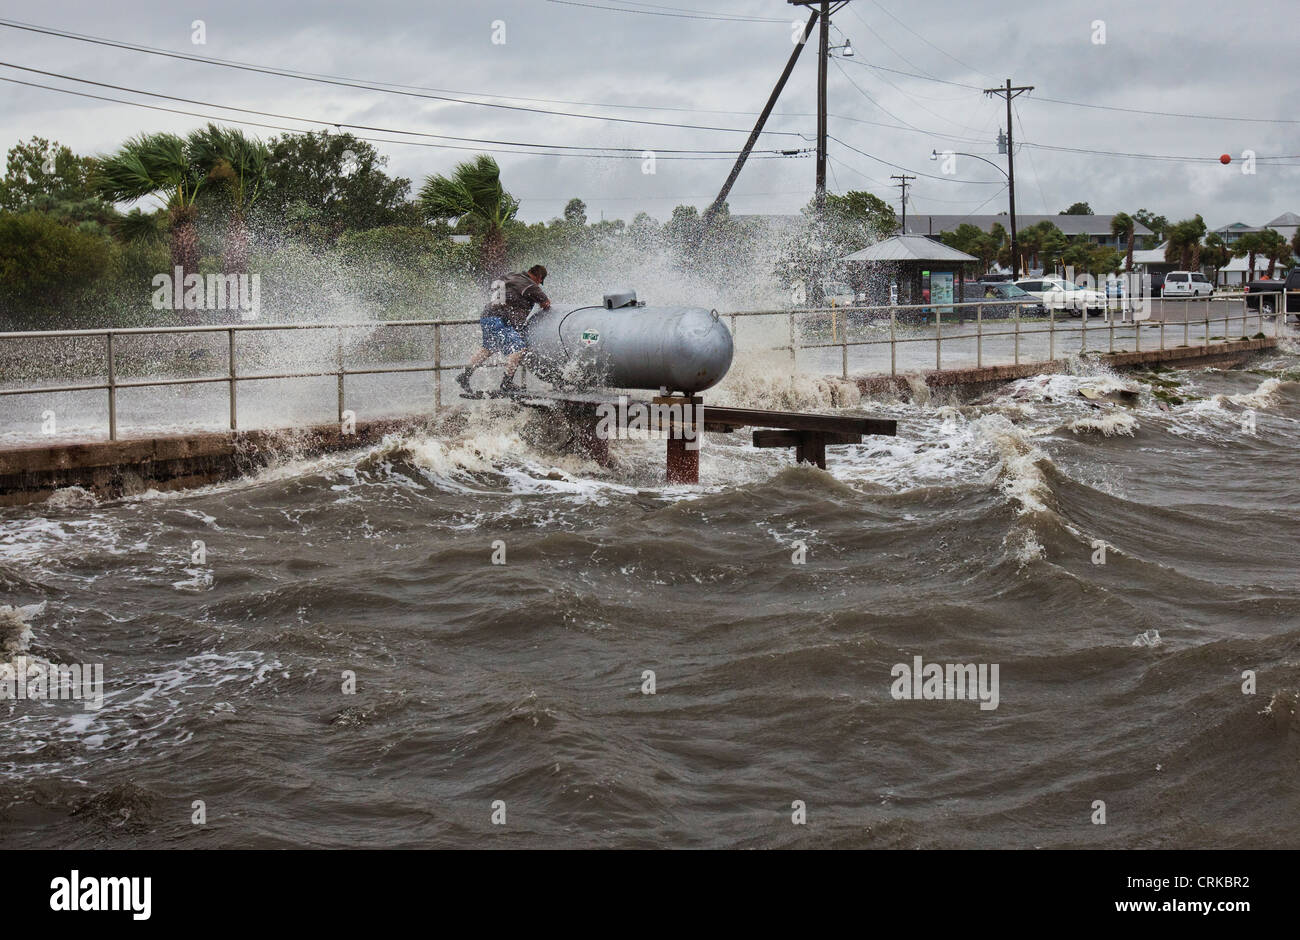 Cedar Key Water Works director climbs out onto a propane deck to shut off the valve during Tropical Storm Debby - Stock Image